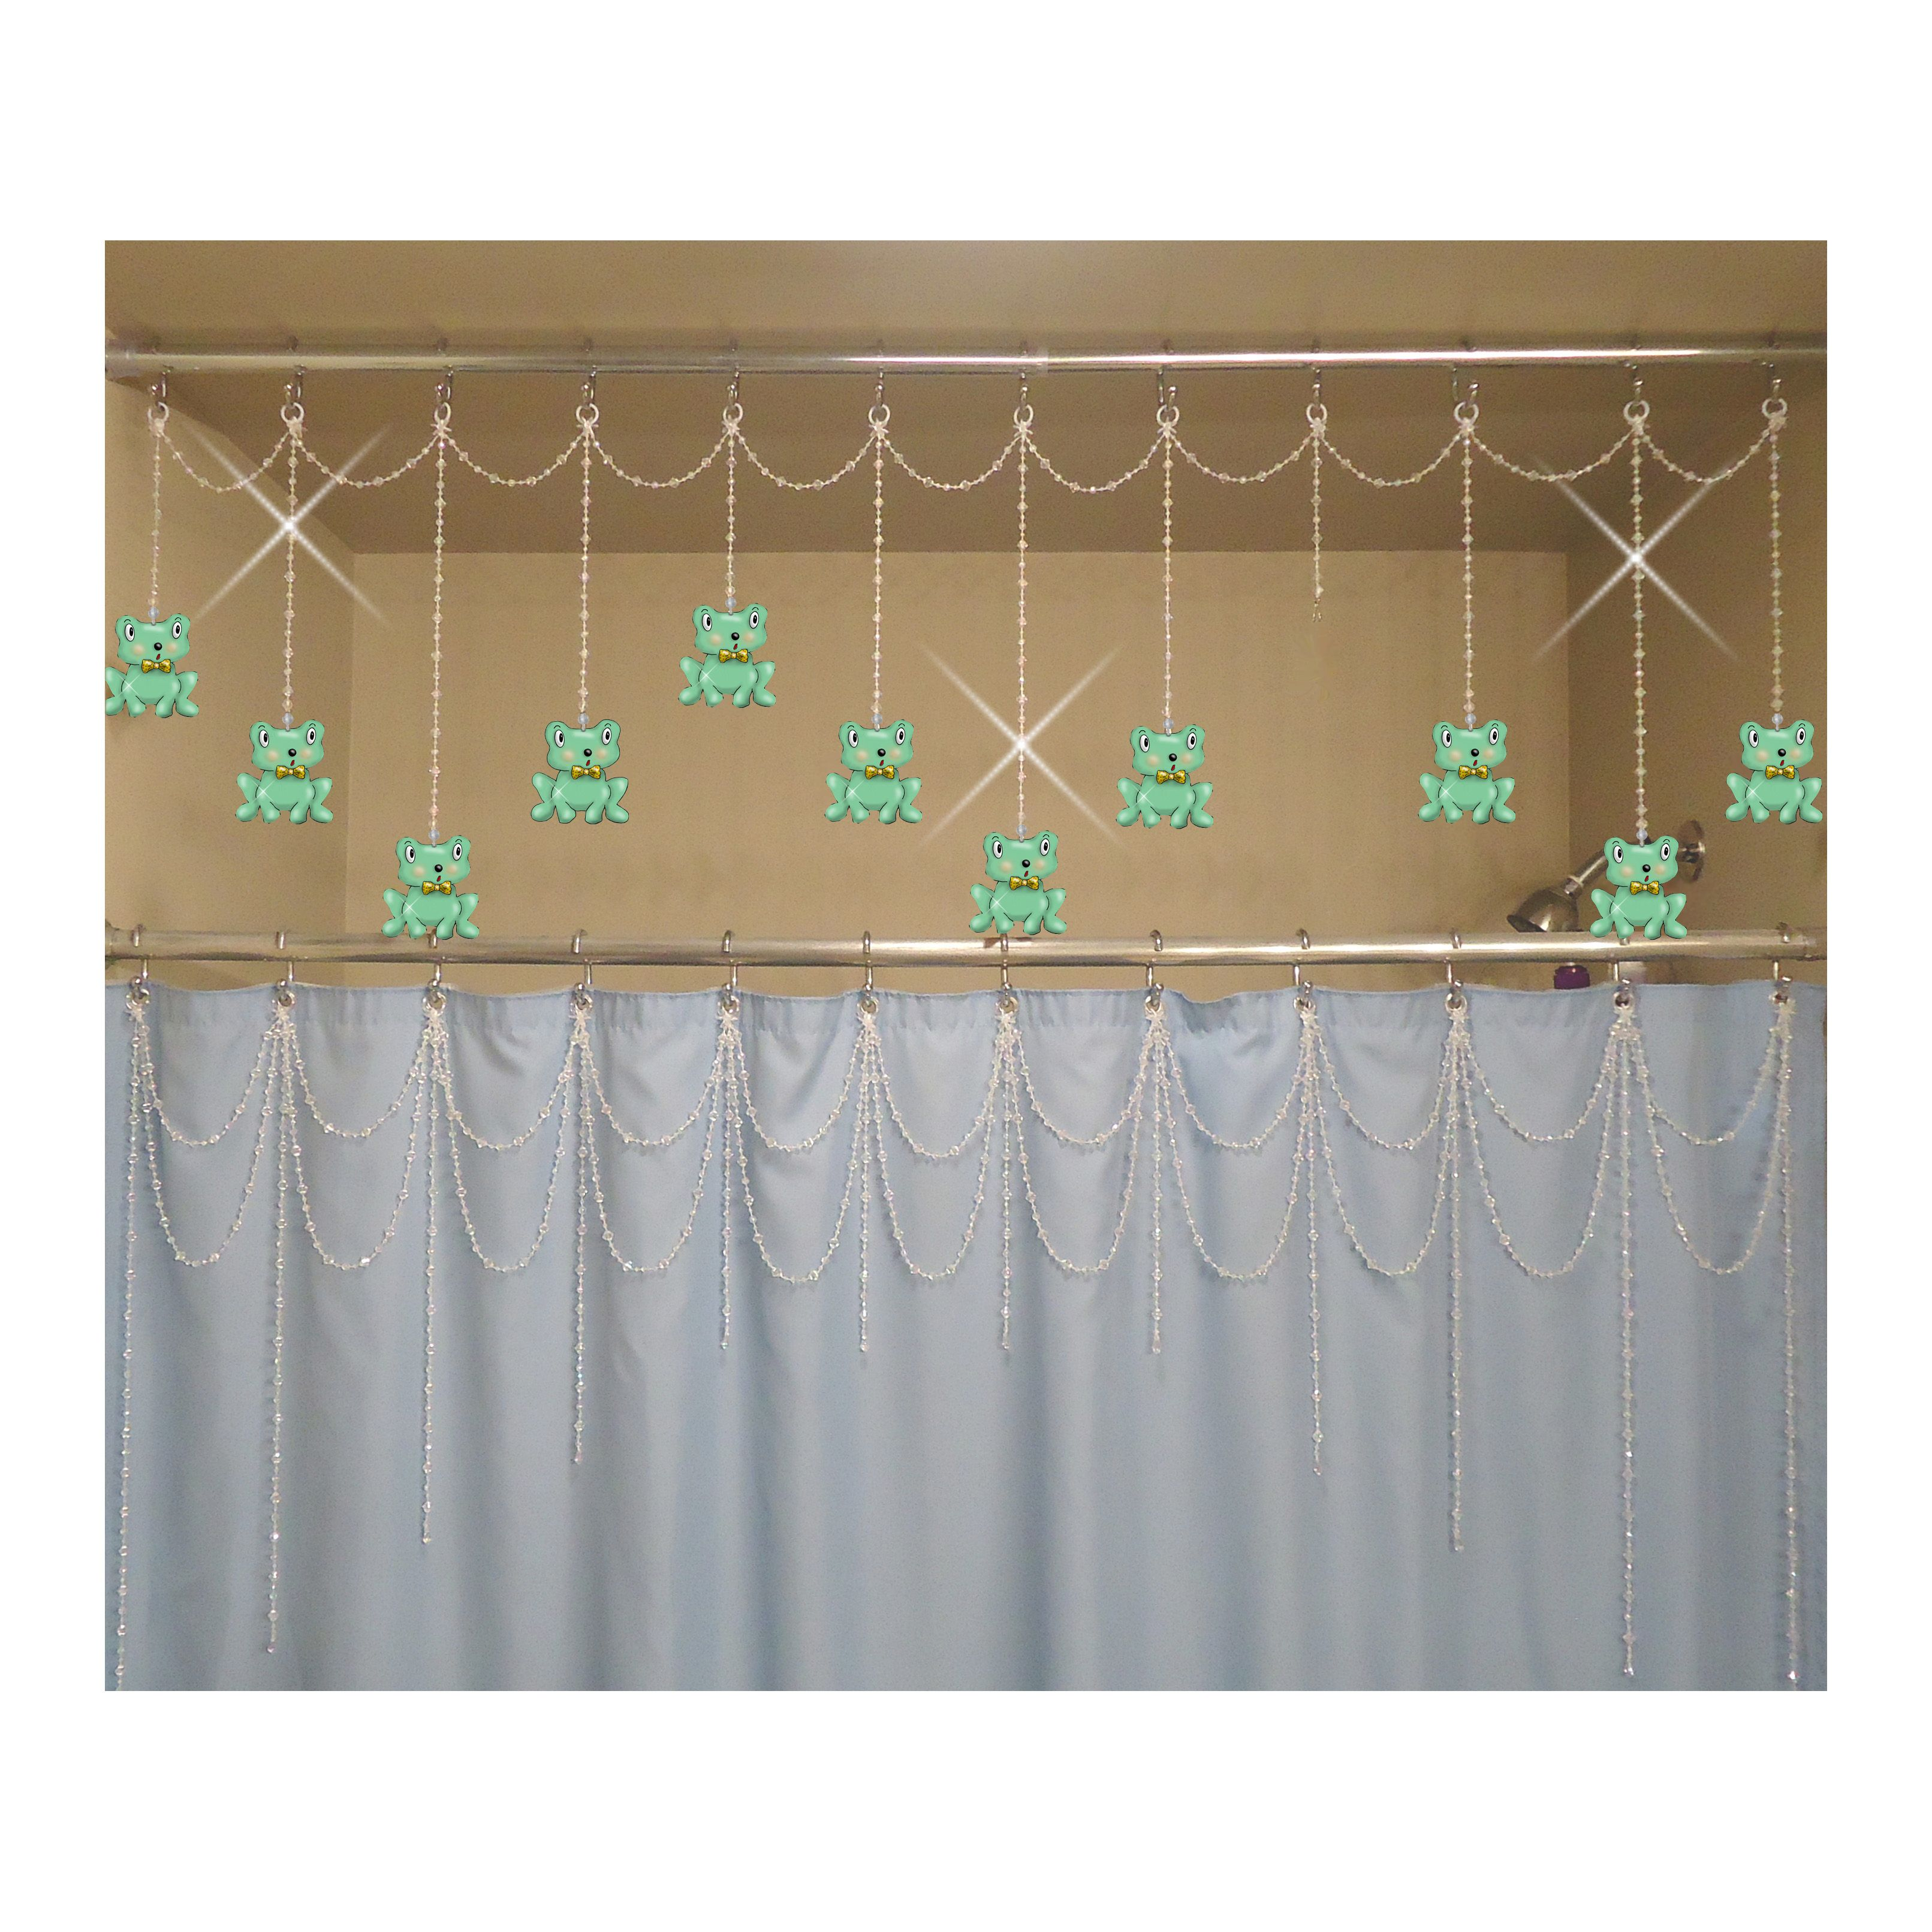 The newest innovation in bathroom decorating. Top: Bathtub/Shower Header Bling with Interchangeable Bling Charms. Froggies Bottom: Shower Curtain Bling Double Swag with Arched Strands. showercurtainbling.etsy